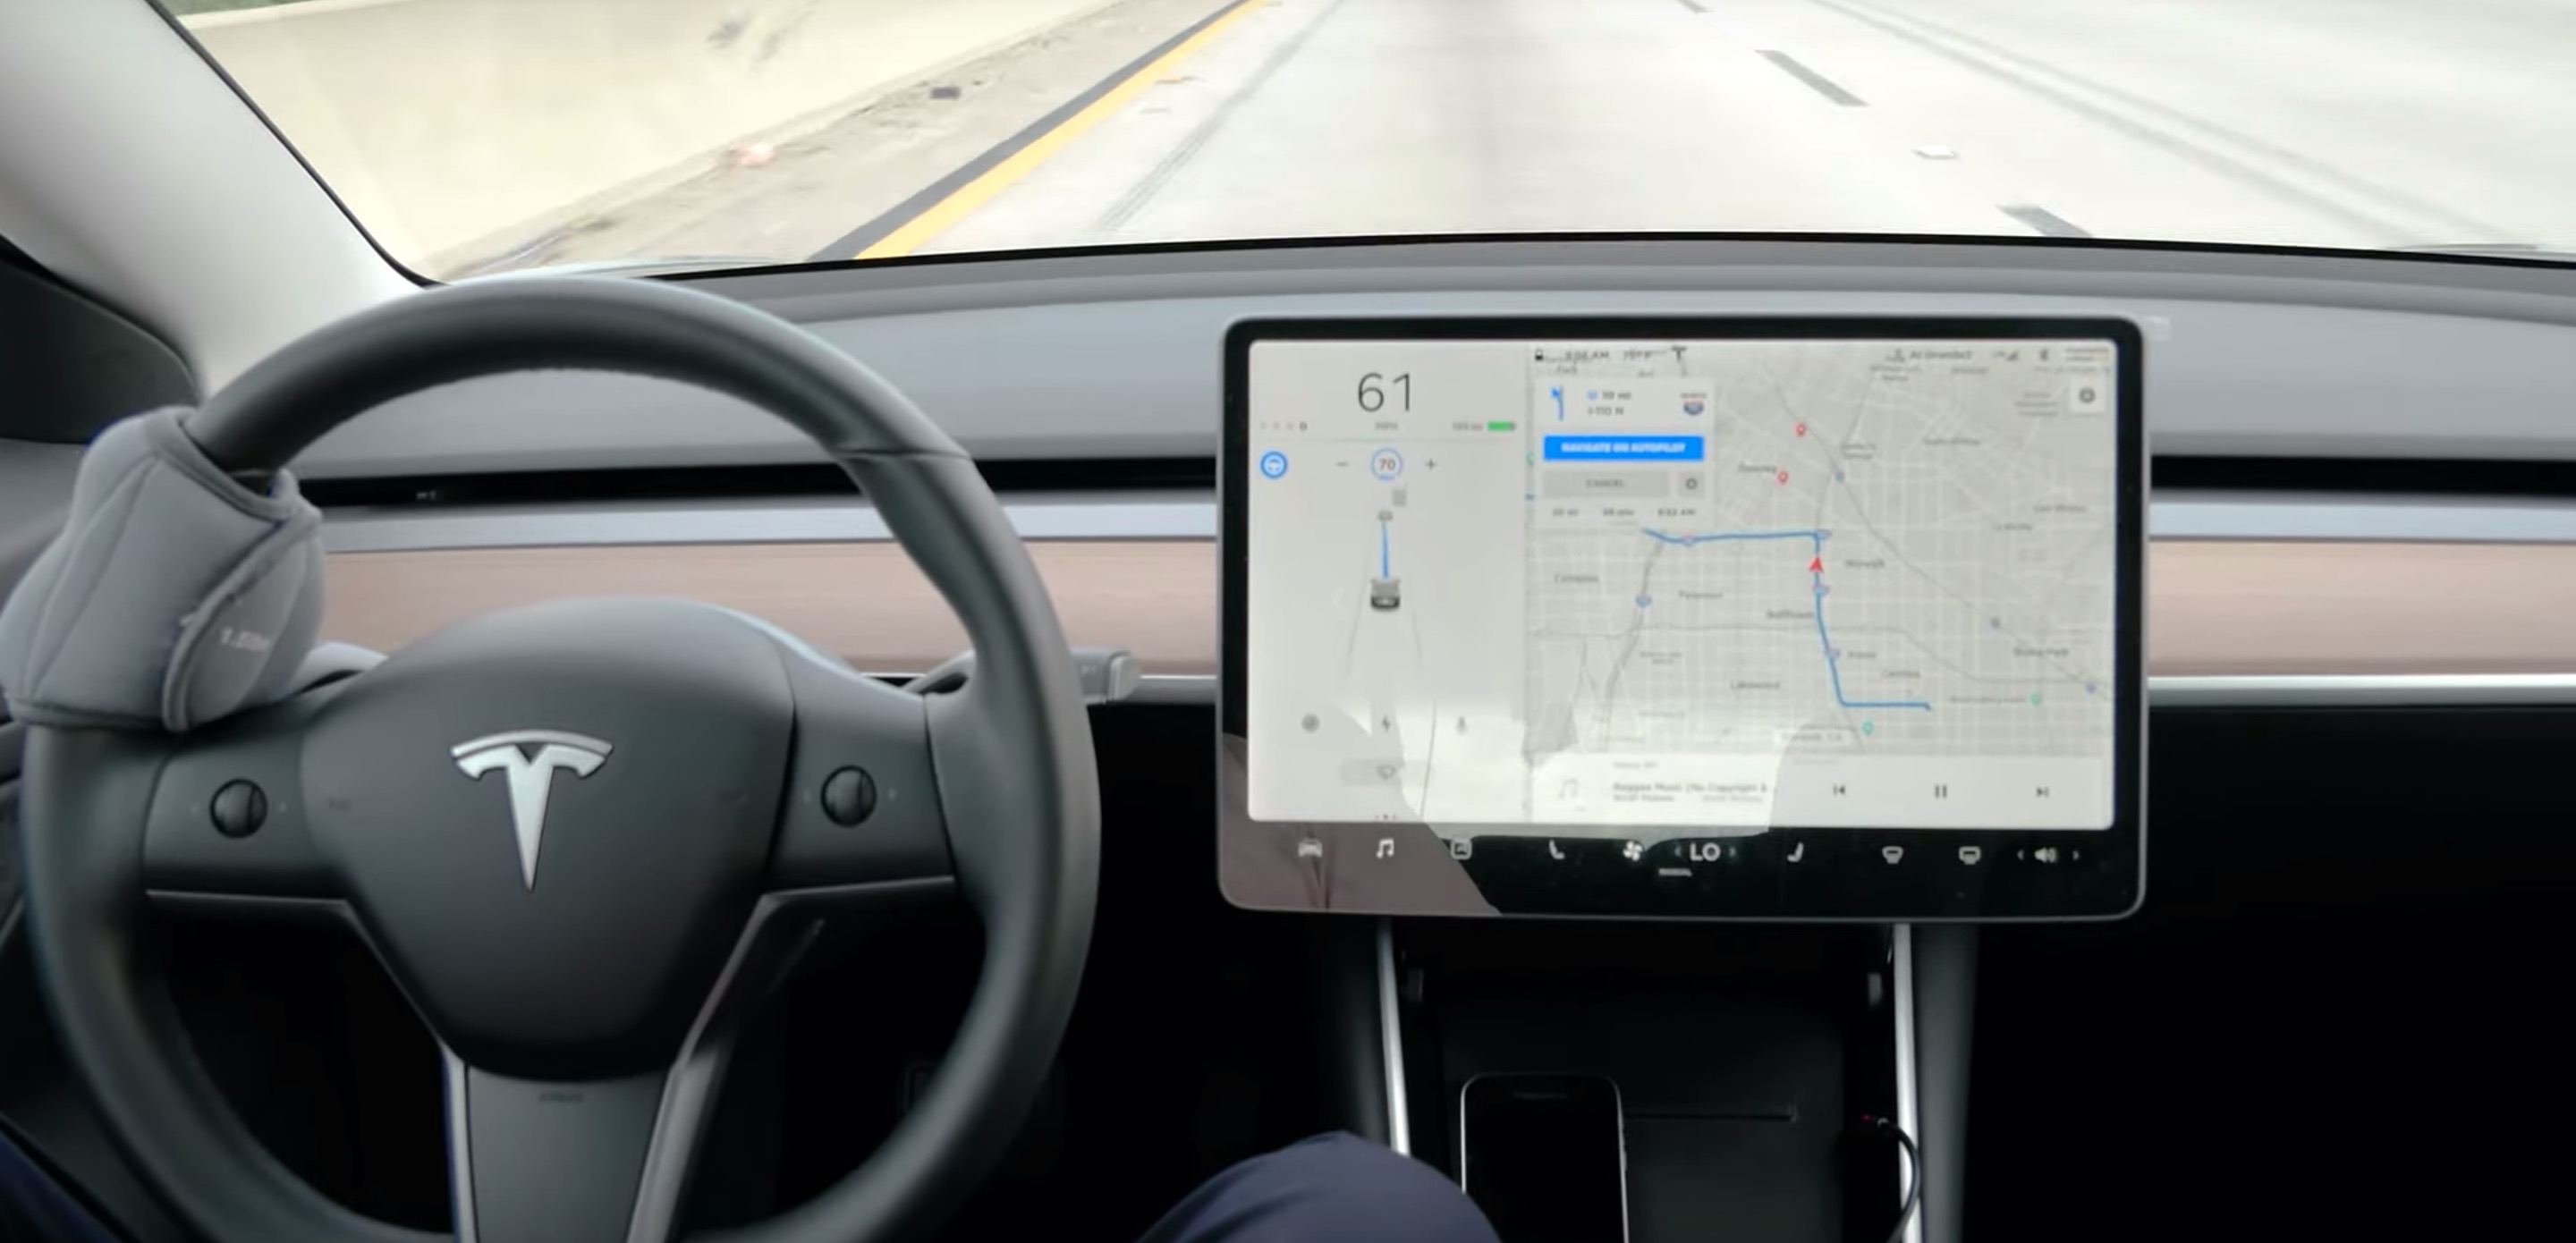 Watch Tesla Autopilot V10 do a 40-min commute on 3 freeways without driver intervention - Electrek